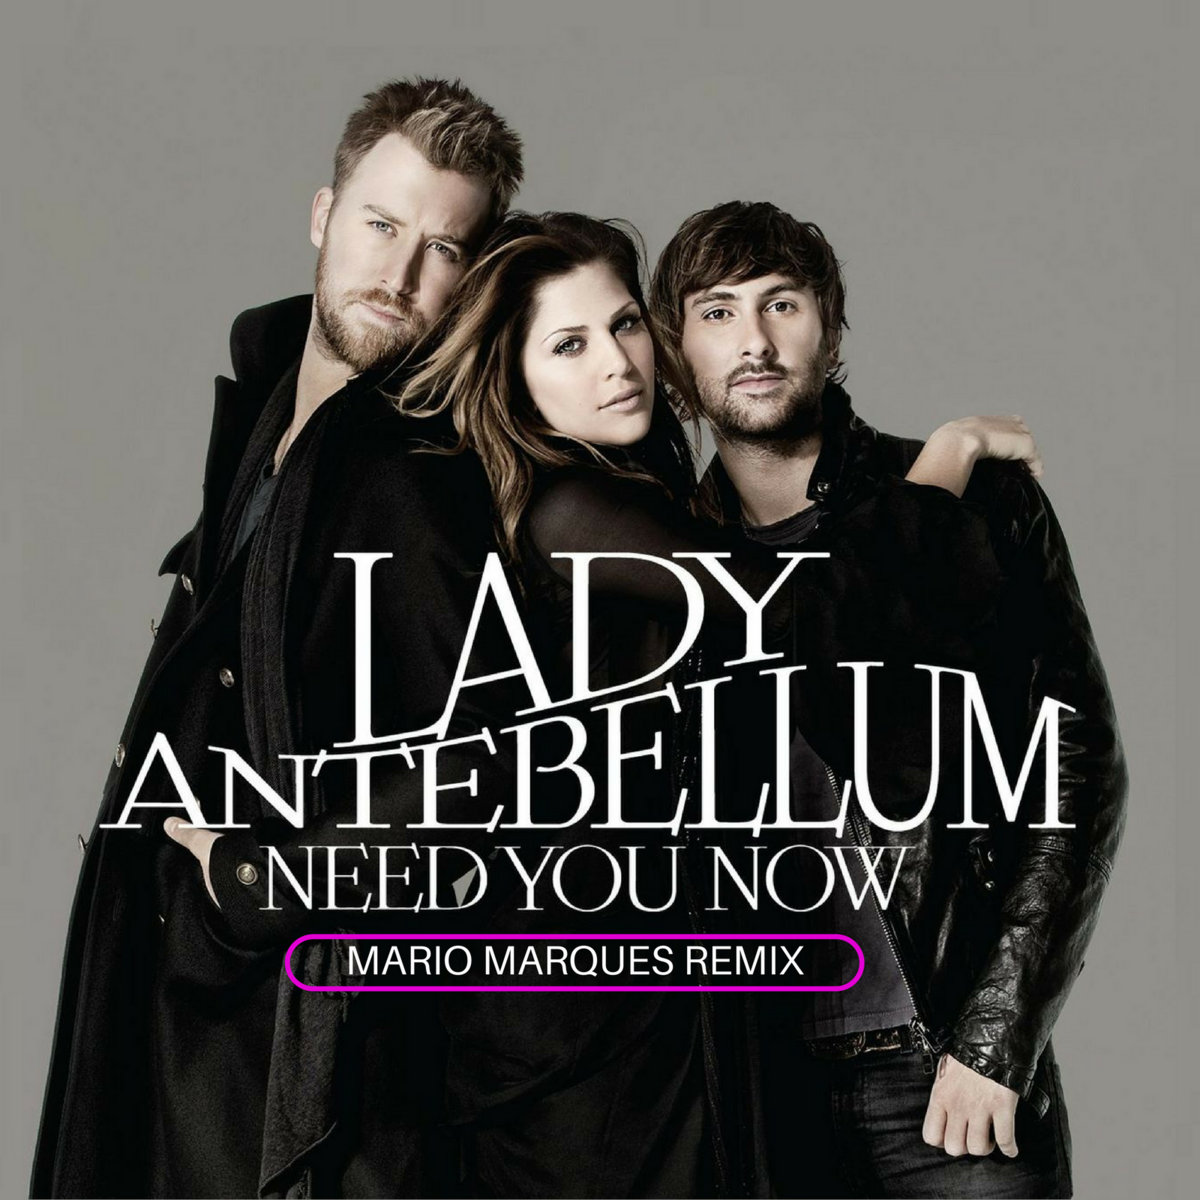 Lady antebellum need you now mp3 download free:: ivcateli.